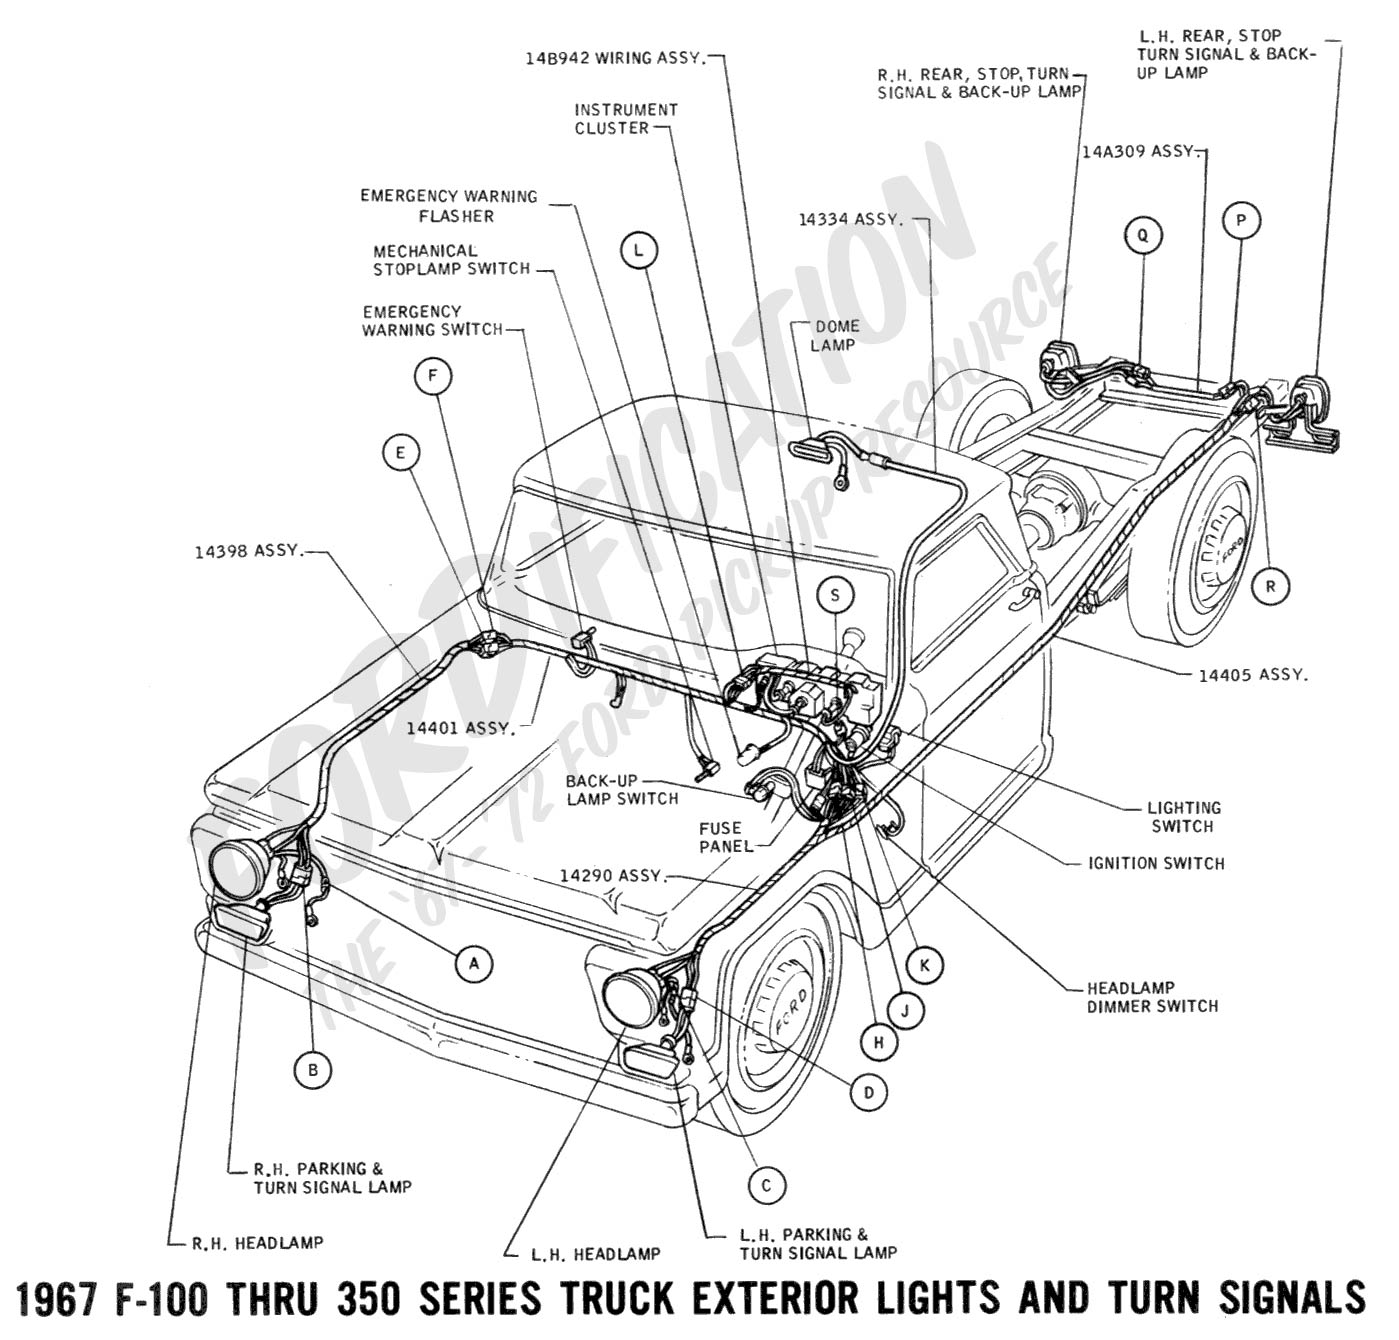 wiring 1967extlights01 ford truck technical drawings and schematics section h wiring 1999 ford ranger xlt wiring diagrams at soozxer.org